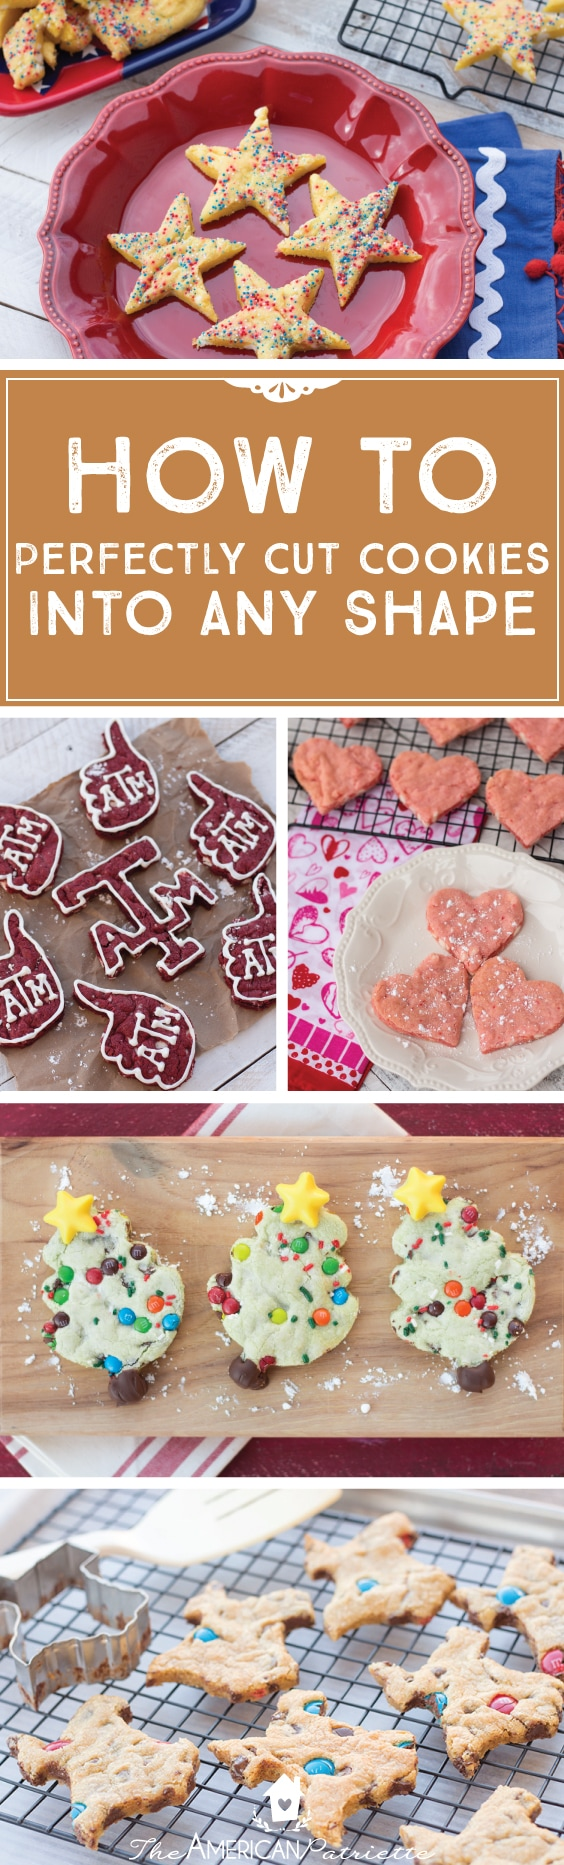 How to perfectly cut cookies into any shape